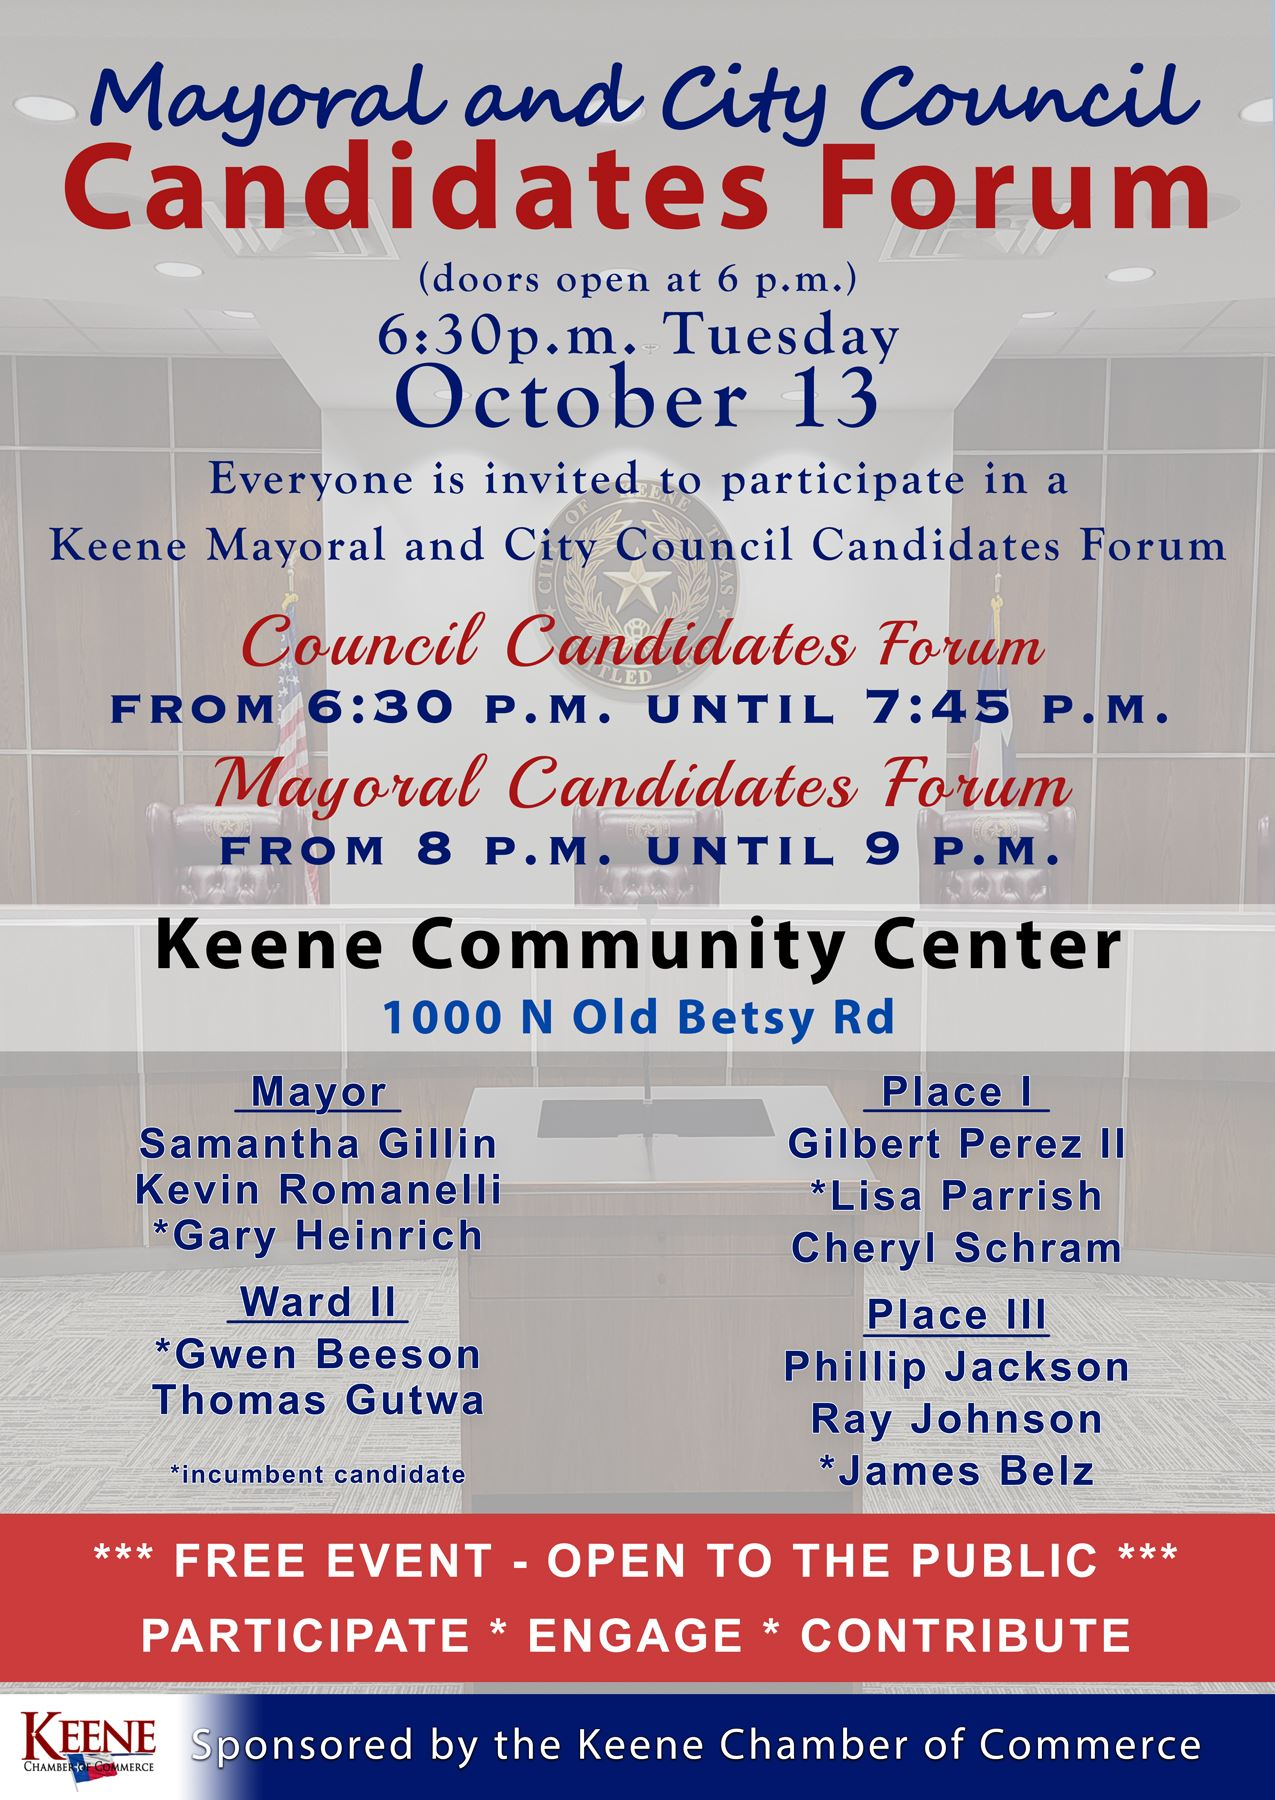 Mayoral-and-City-Council-Candidates-Forum